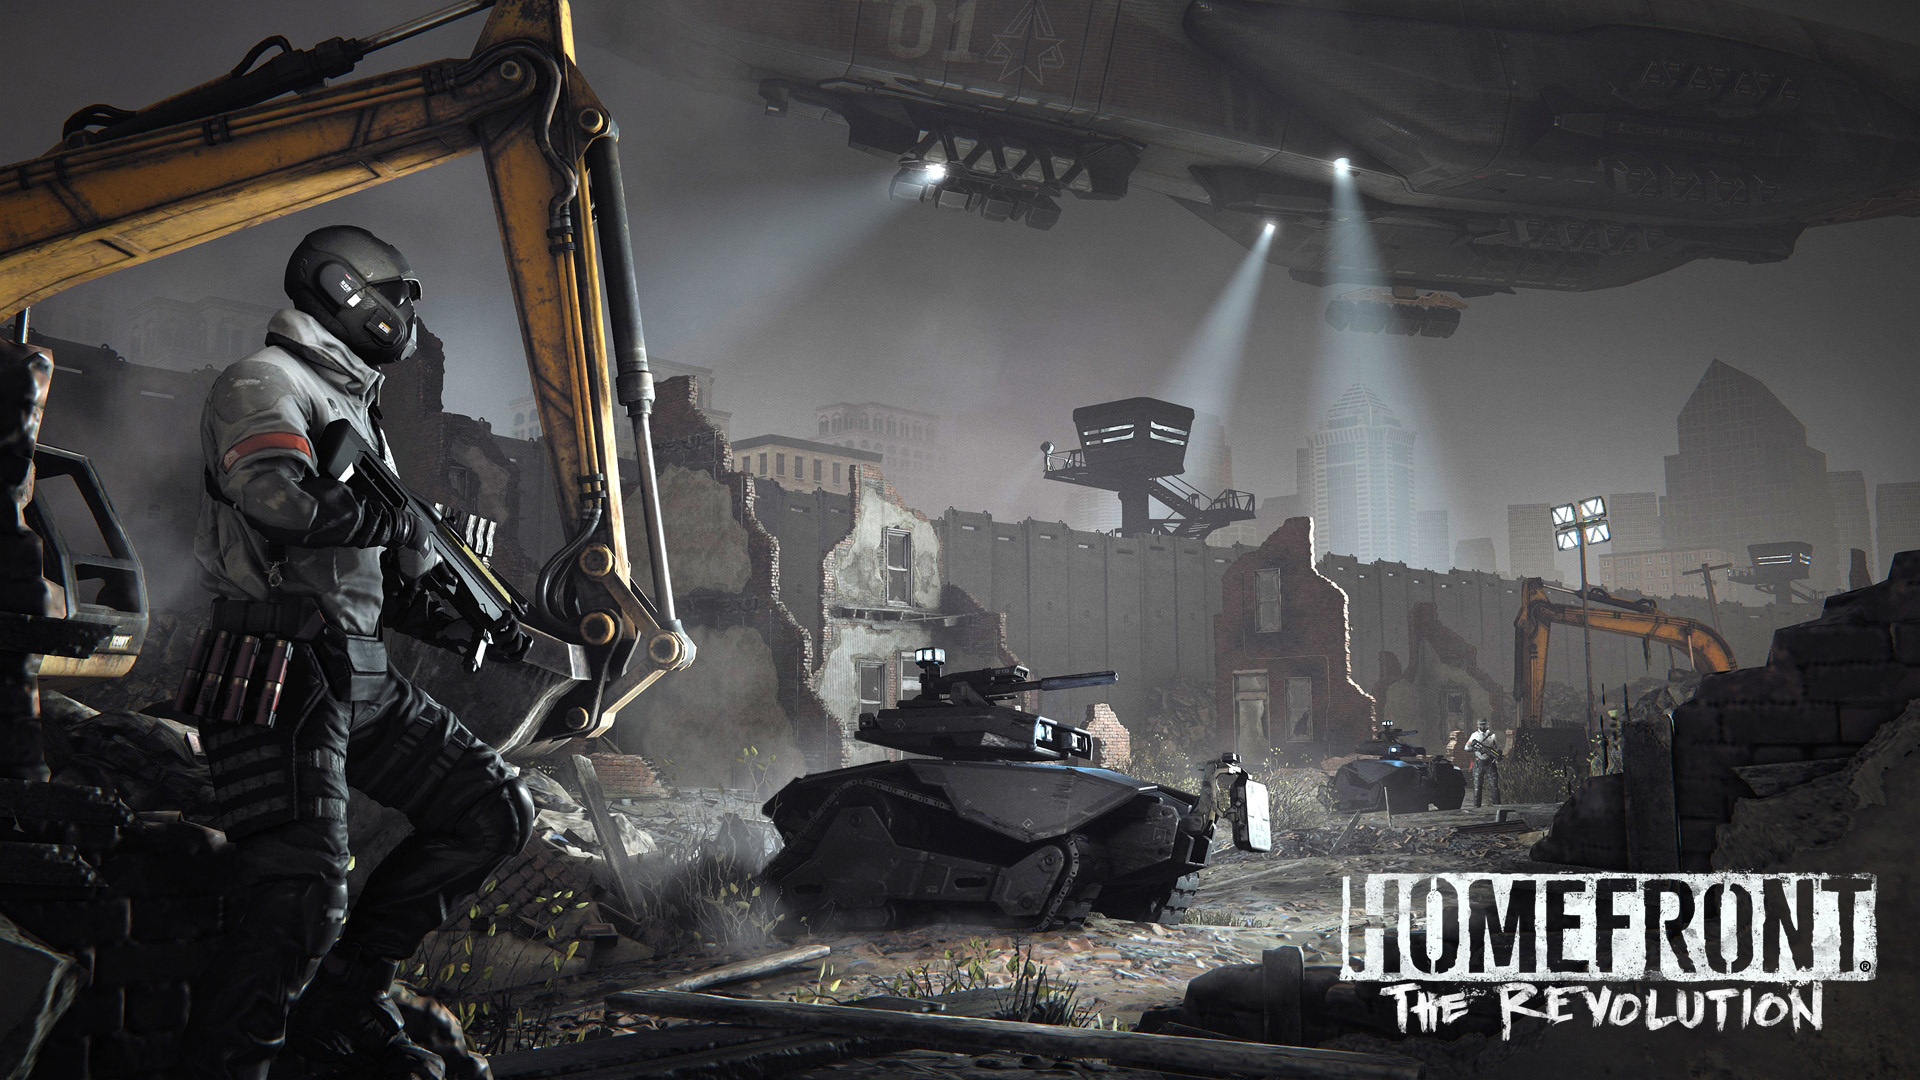 Homefront: The Revolution Wallpaper in 1920x1080